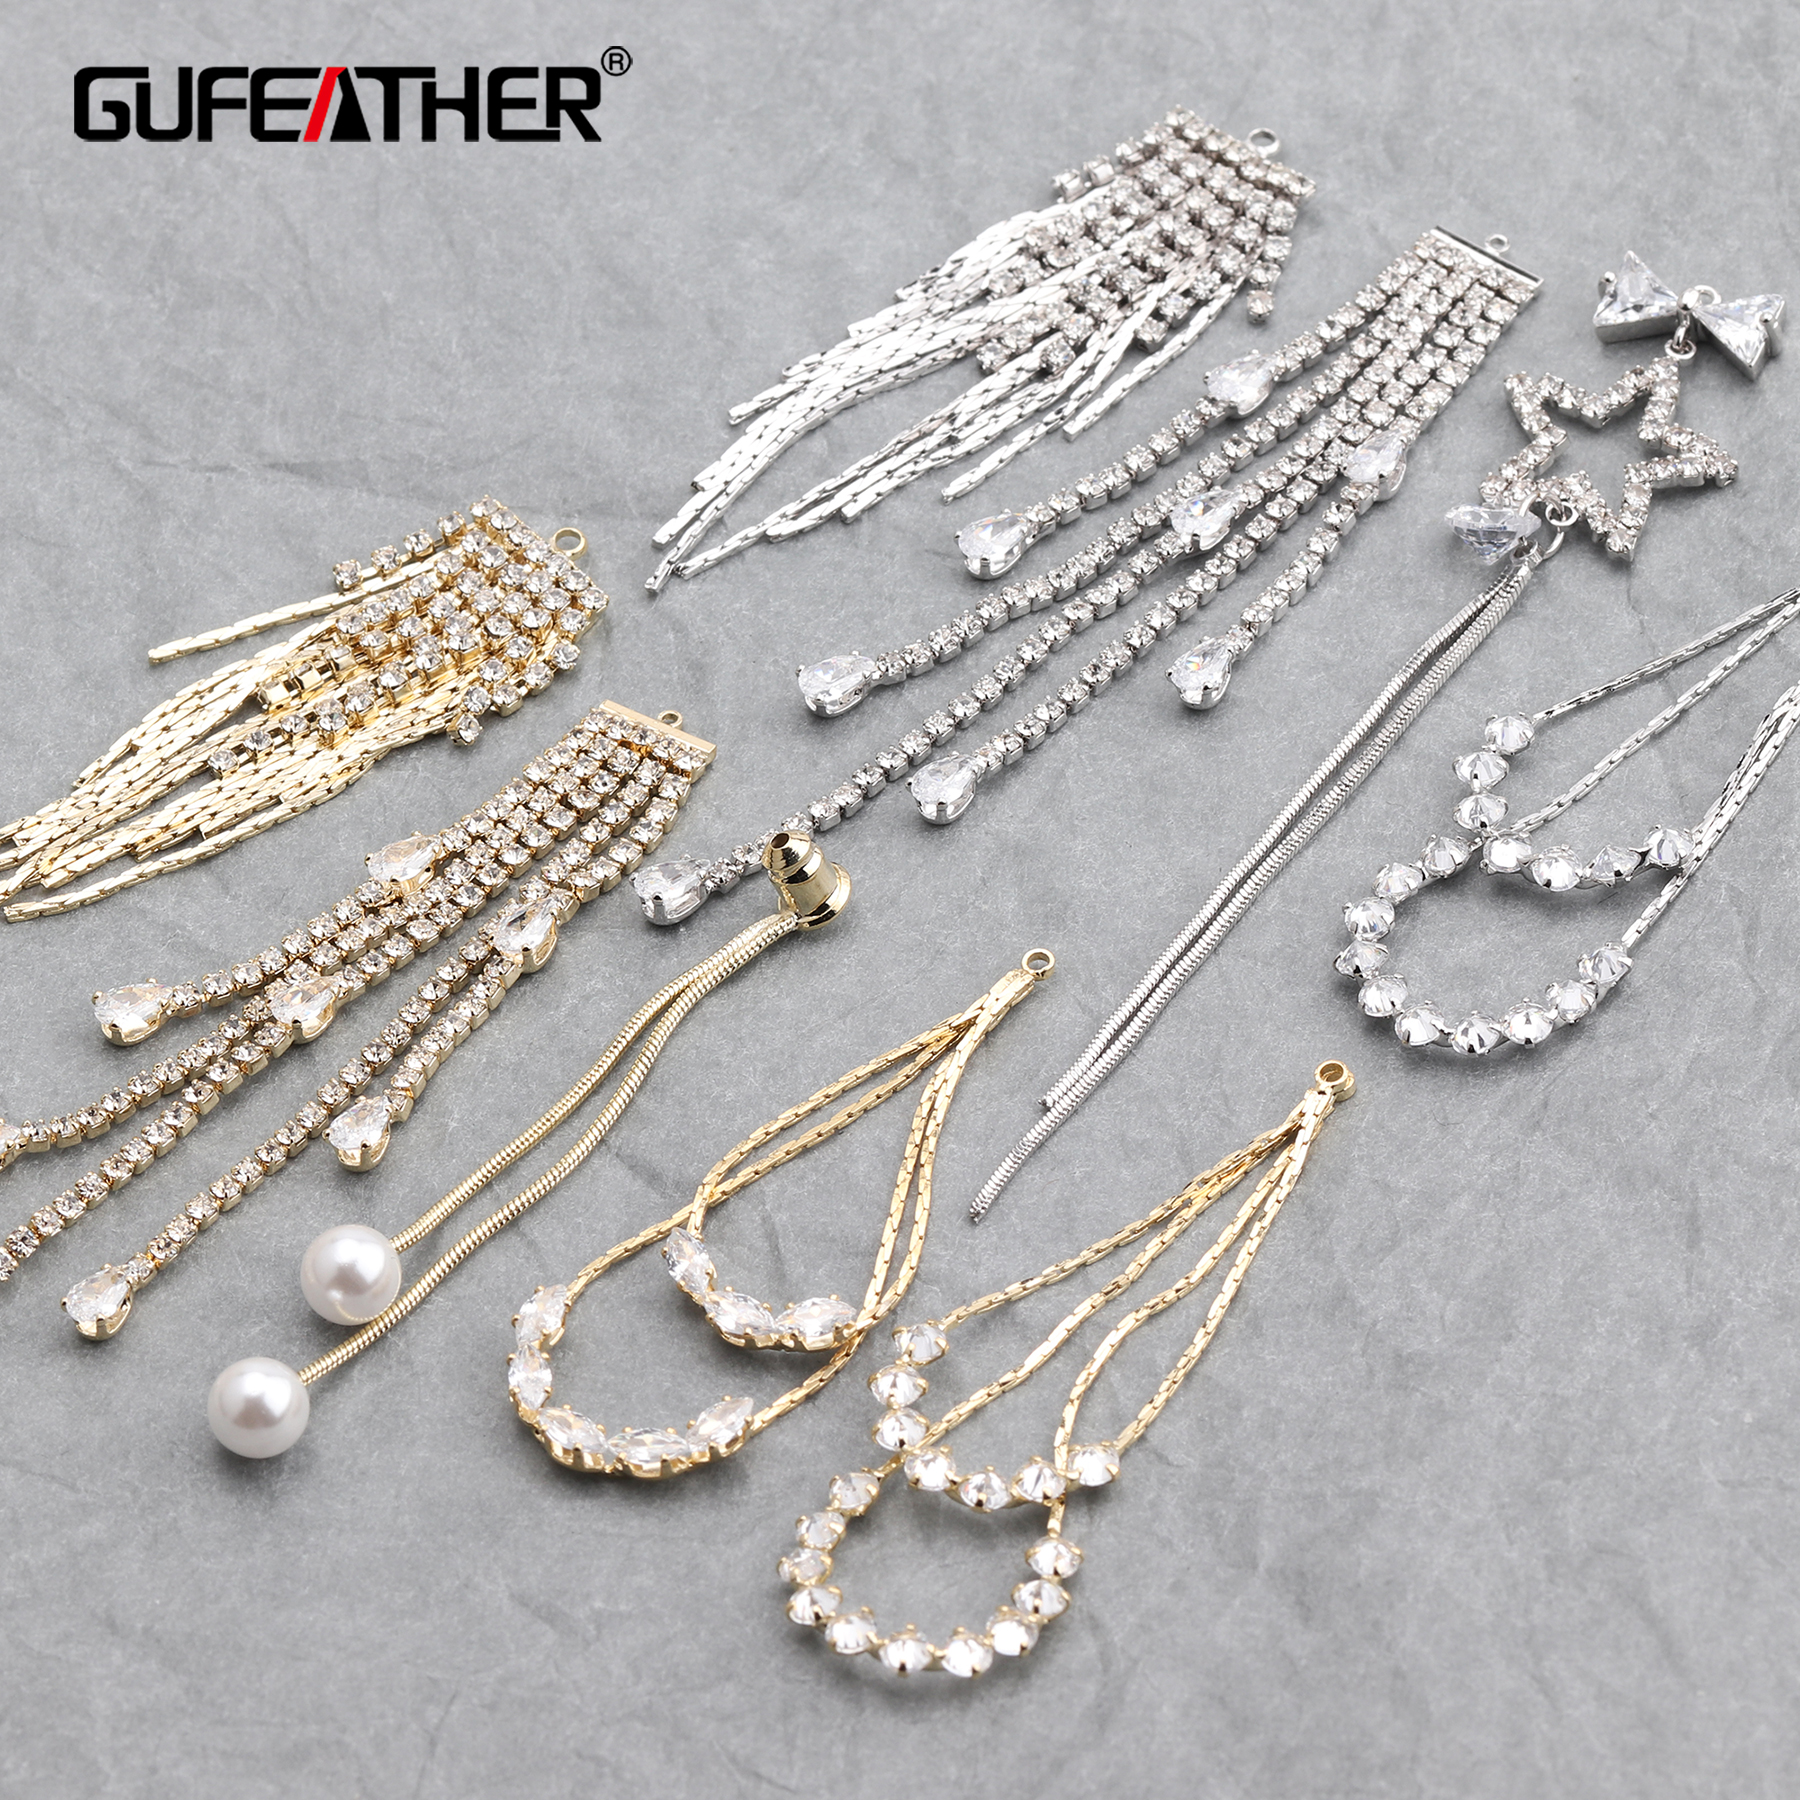 GUFEATHER M631,jewelry Making,diy Tassel Pendant,18k Gold Plated,stable Quality,jewelry Findings,hand Made,diy Earrings,6pcs/lot